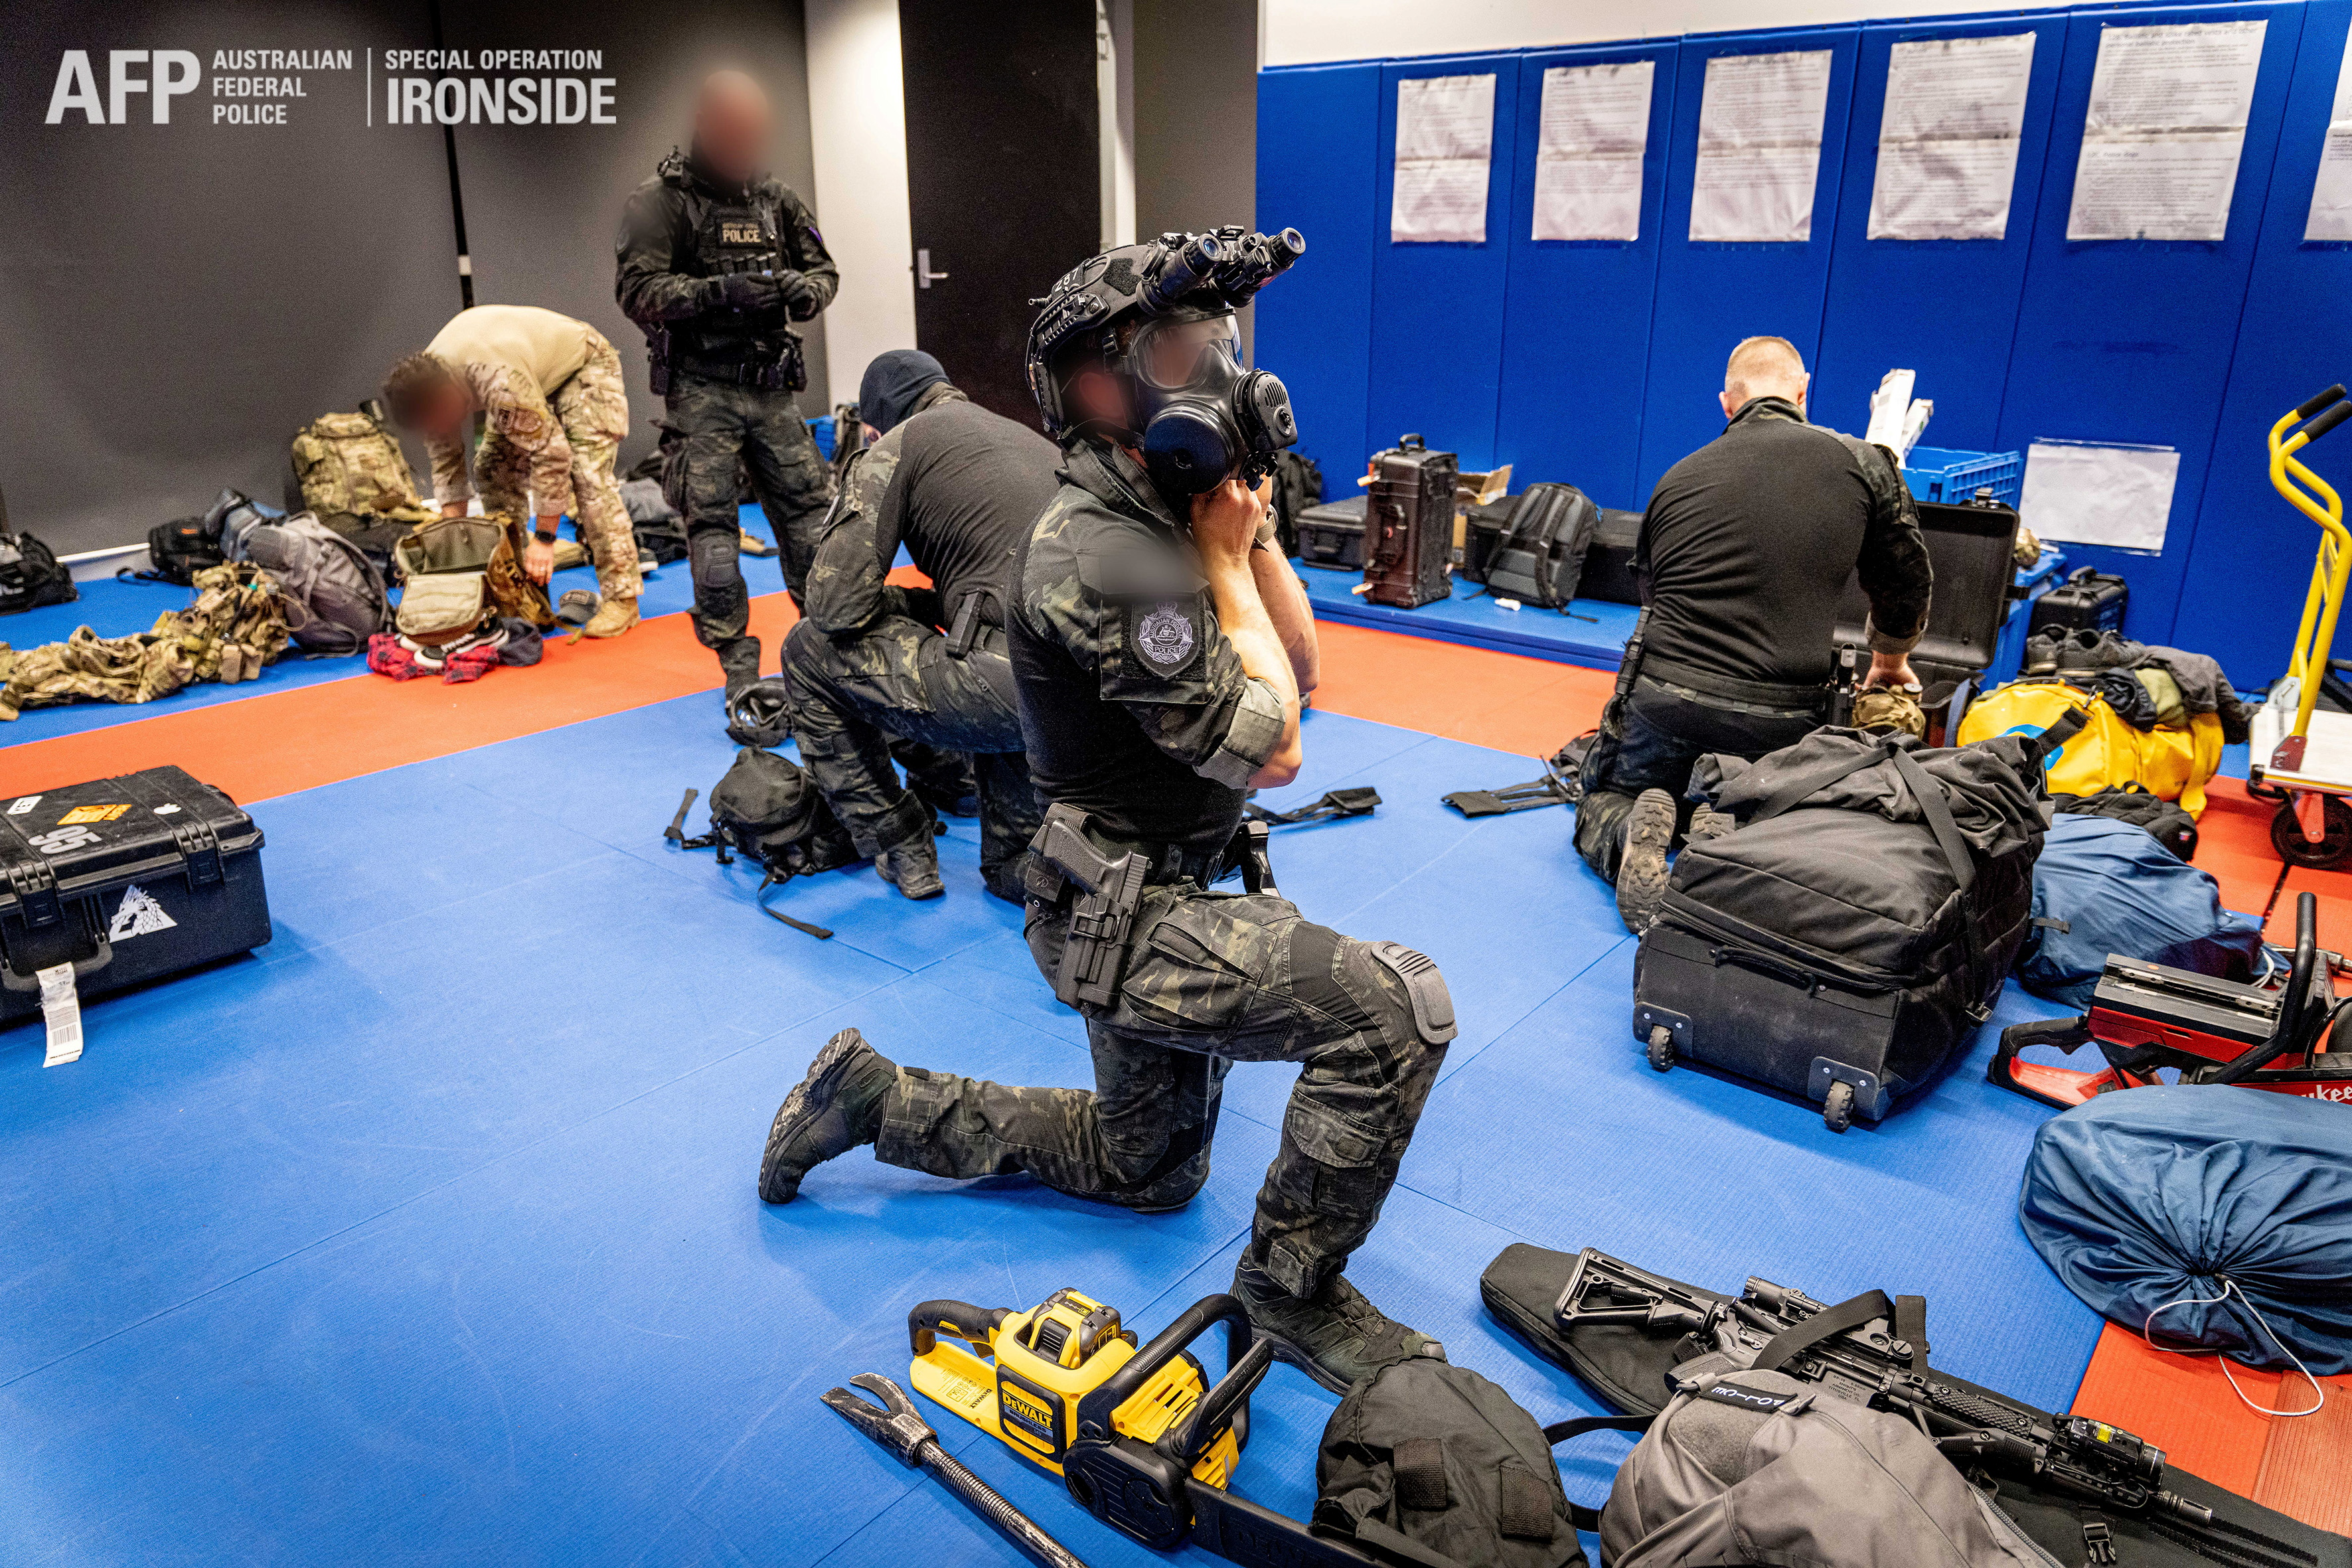 Australian Federal Police are seen during its Operation Ironside against organised crime in this undated handout photo released June 8, 2021.   Australian Federal Police/Handout via REUTERS